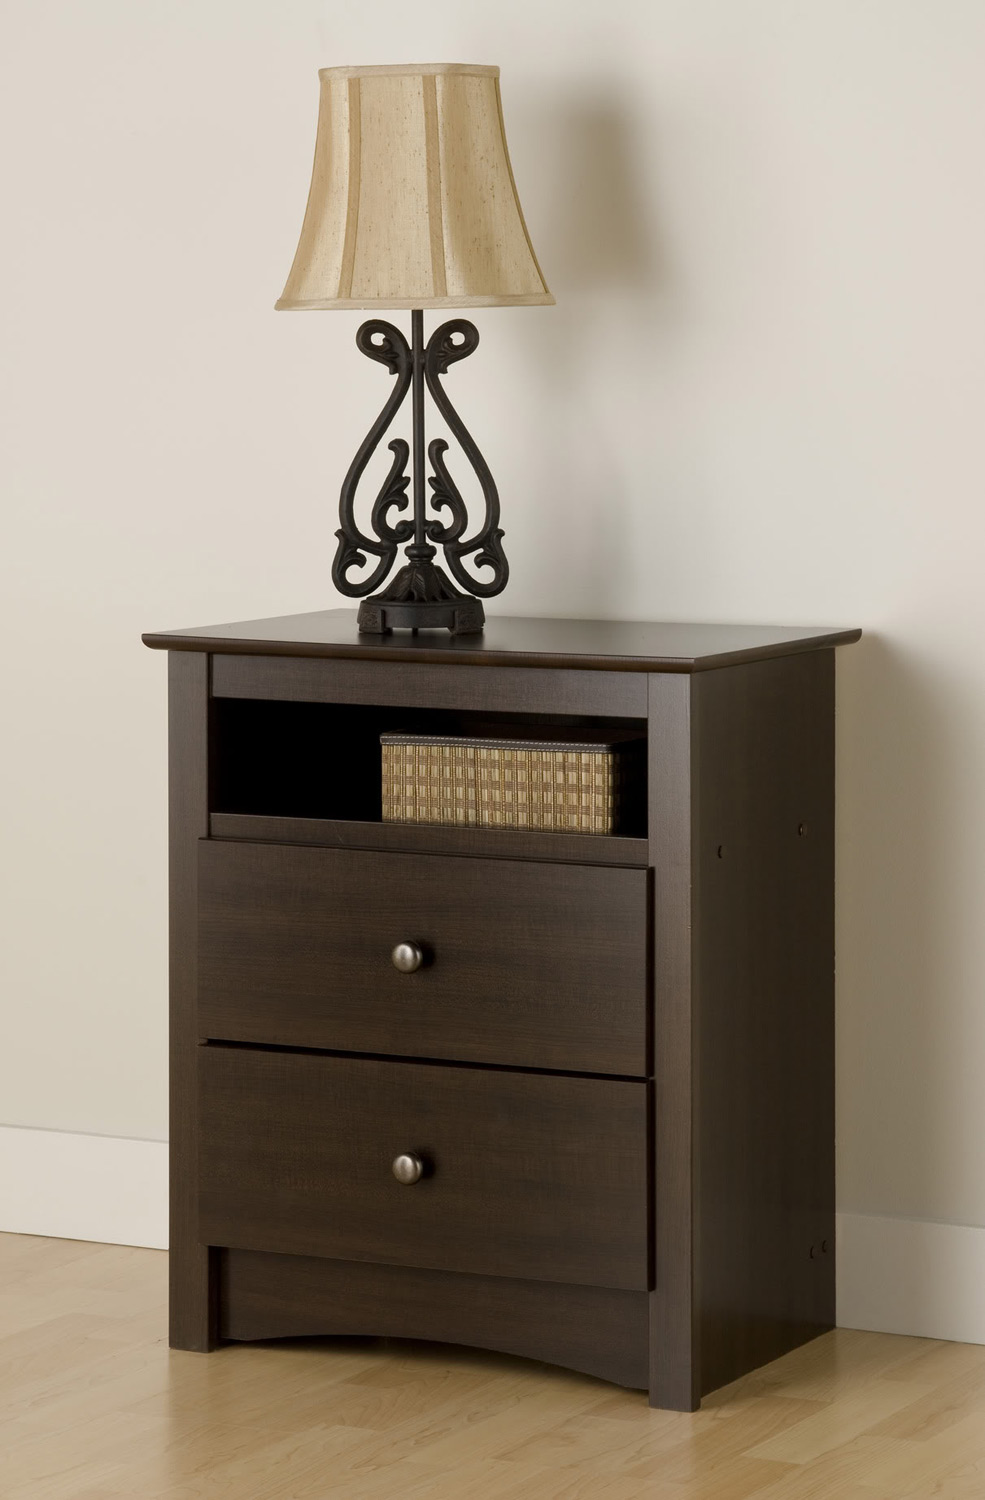 Prepac Fremont Tall 2 Drawer Night Stand with Open Shelf - Espresso